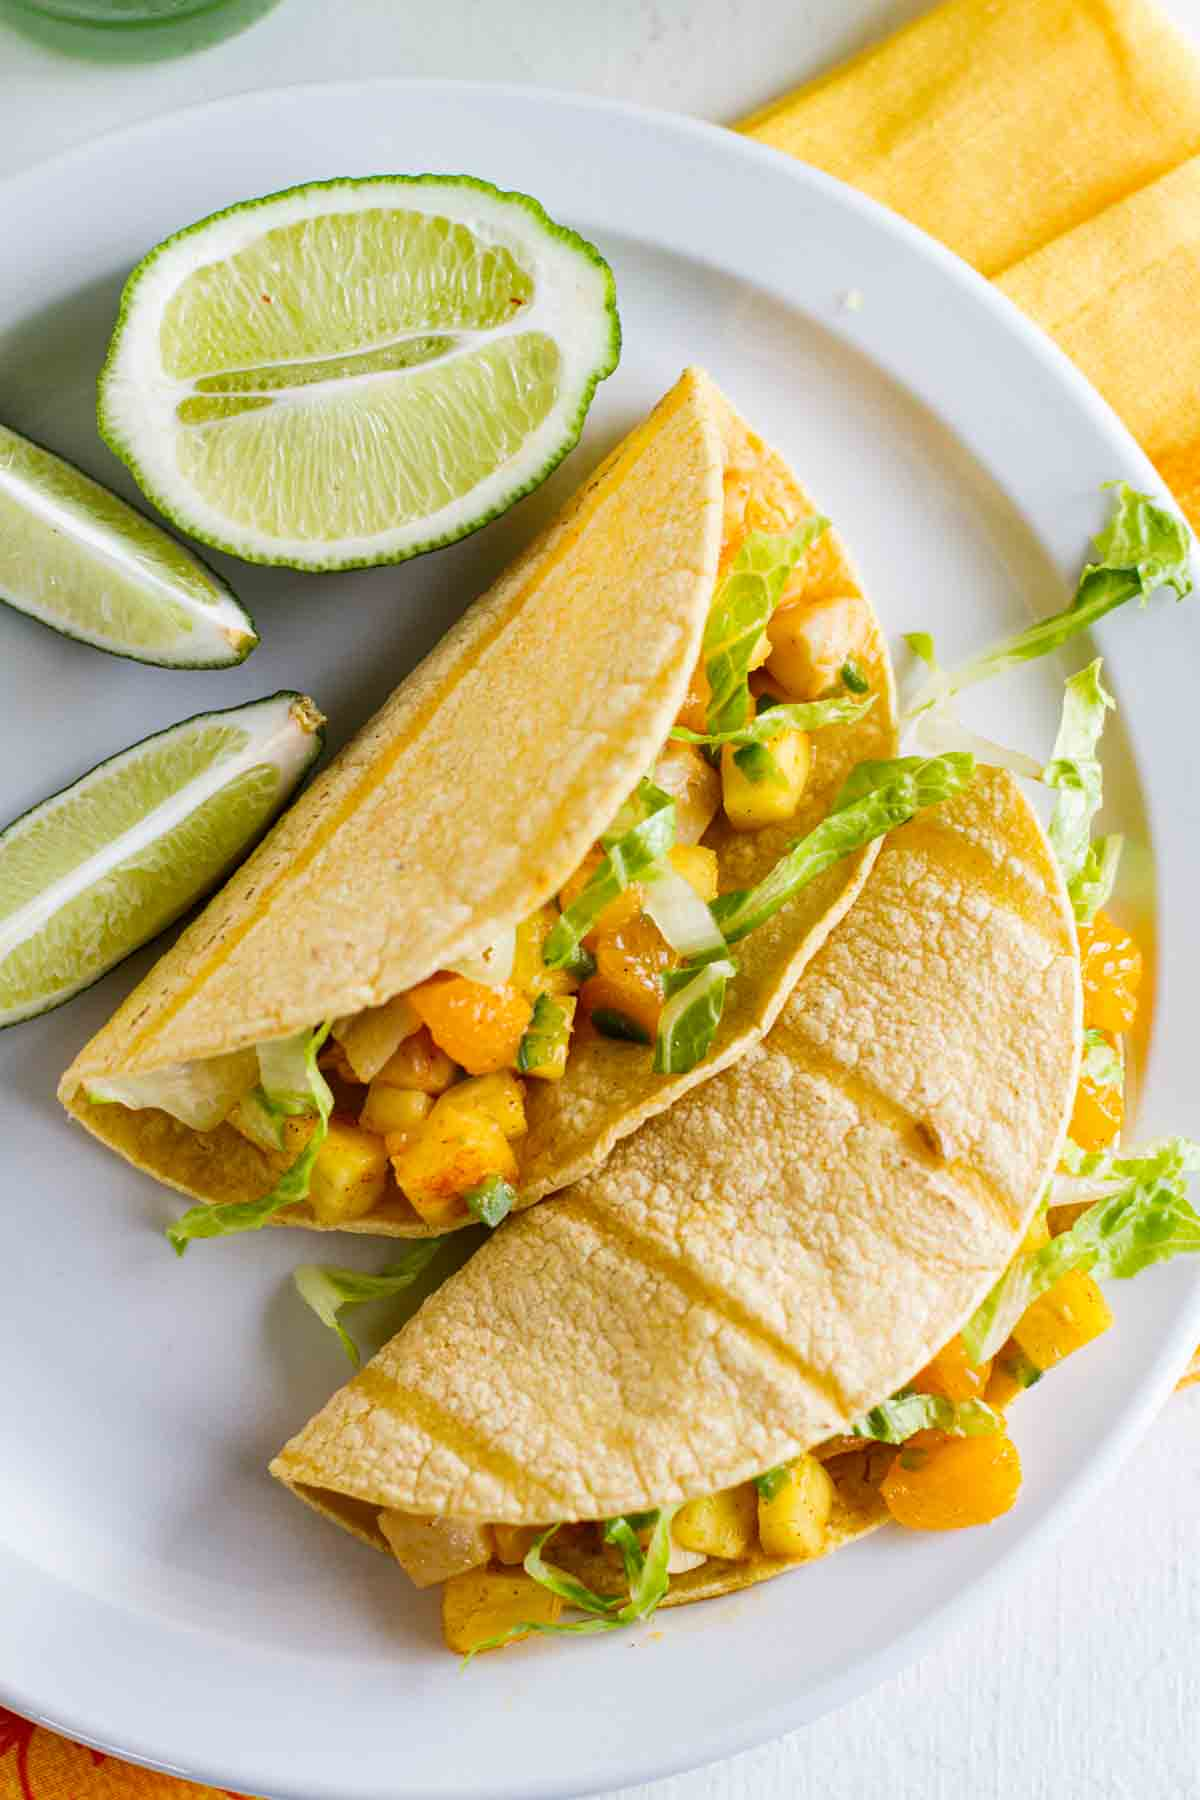 overhead view of citrus fish tacos with fruit salsa with limes on the plate